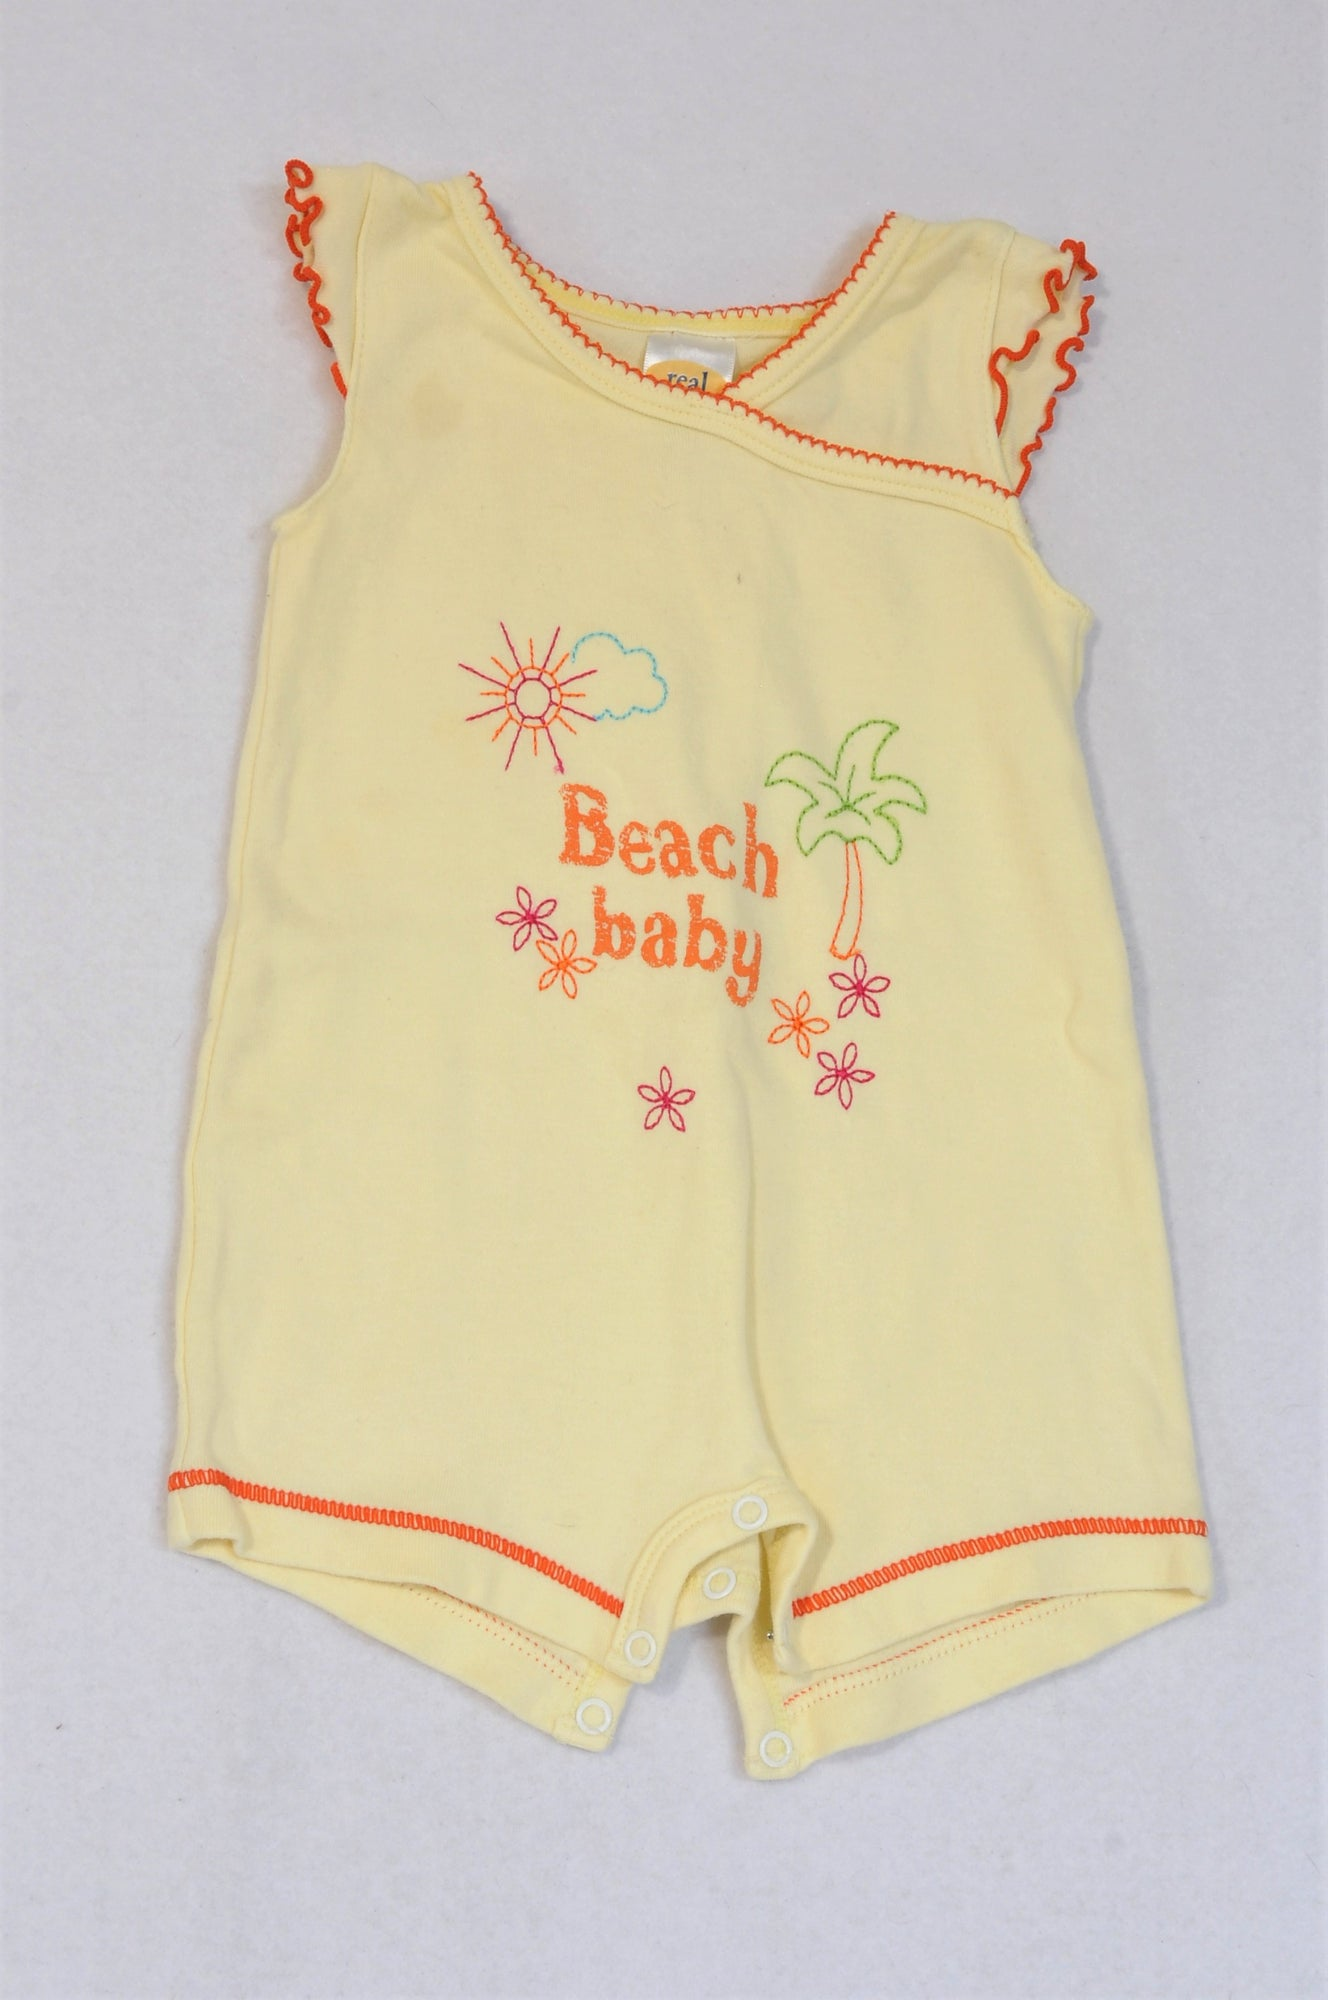 Real Baby Light Yellow Orange Trim Beach Baby Romper Girls 0 3 Month Once More